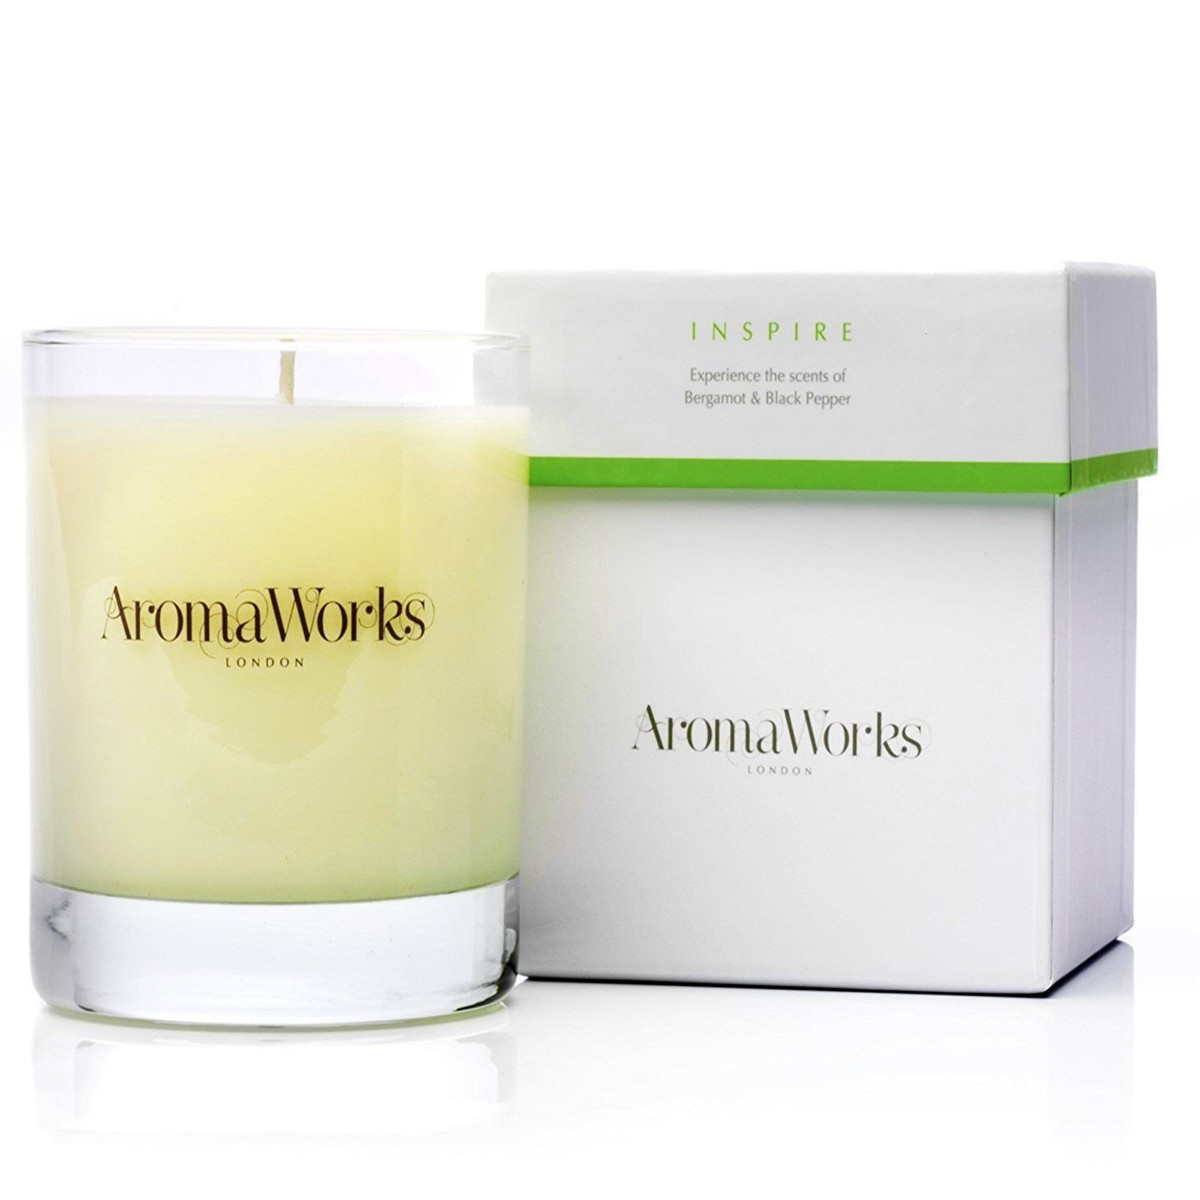 Aromaworks Inspire Candle 30 cl